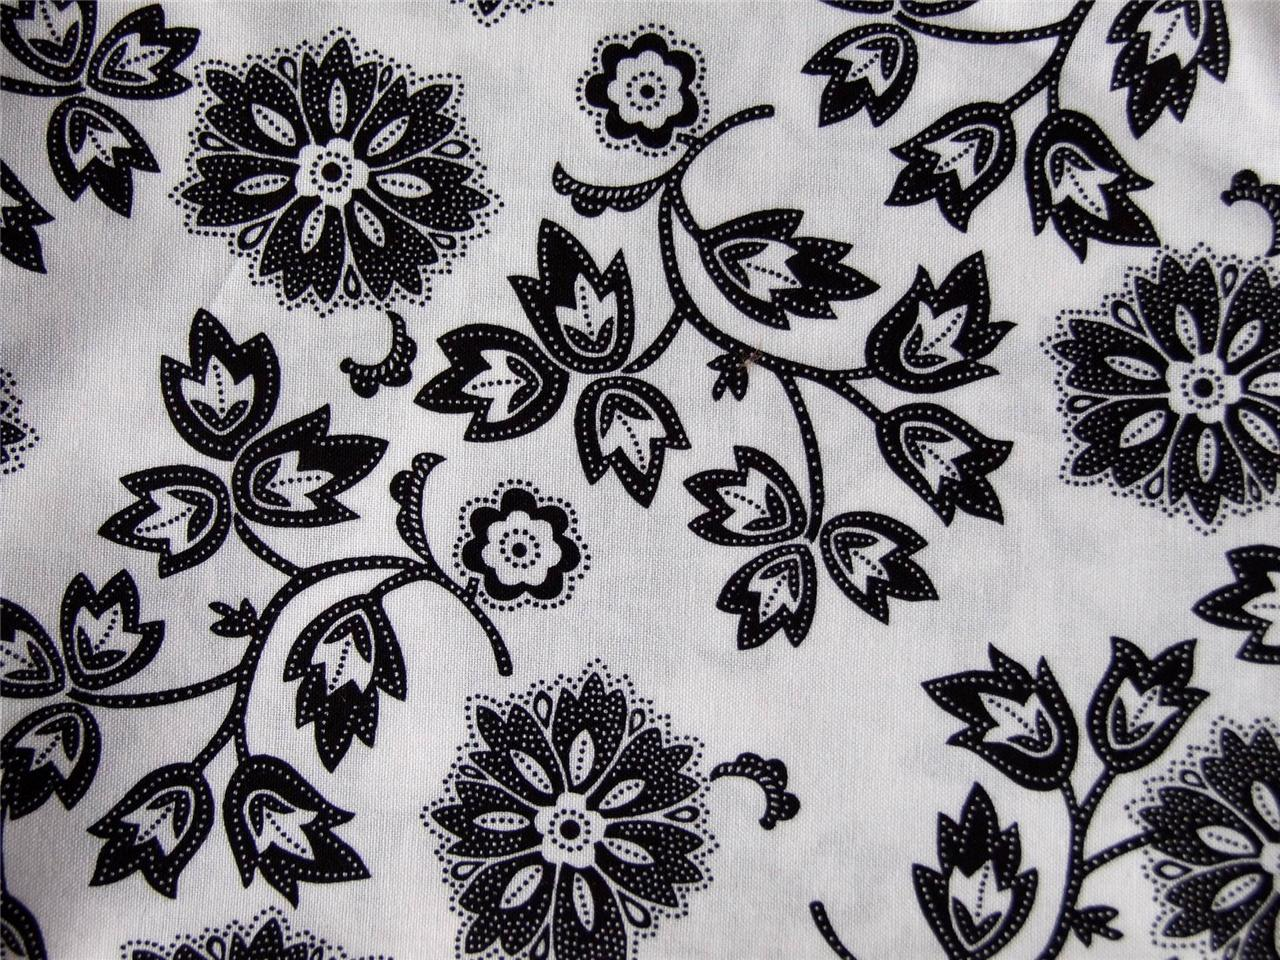 red black white filigree floral 100 cotton fabric material craft